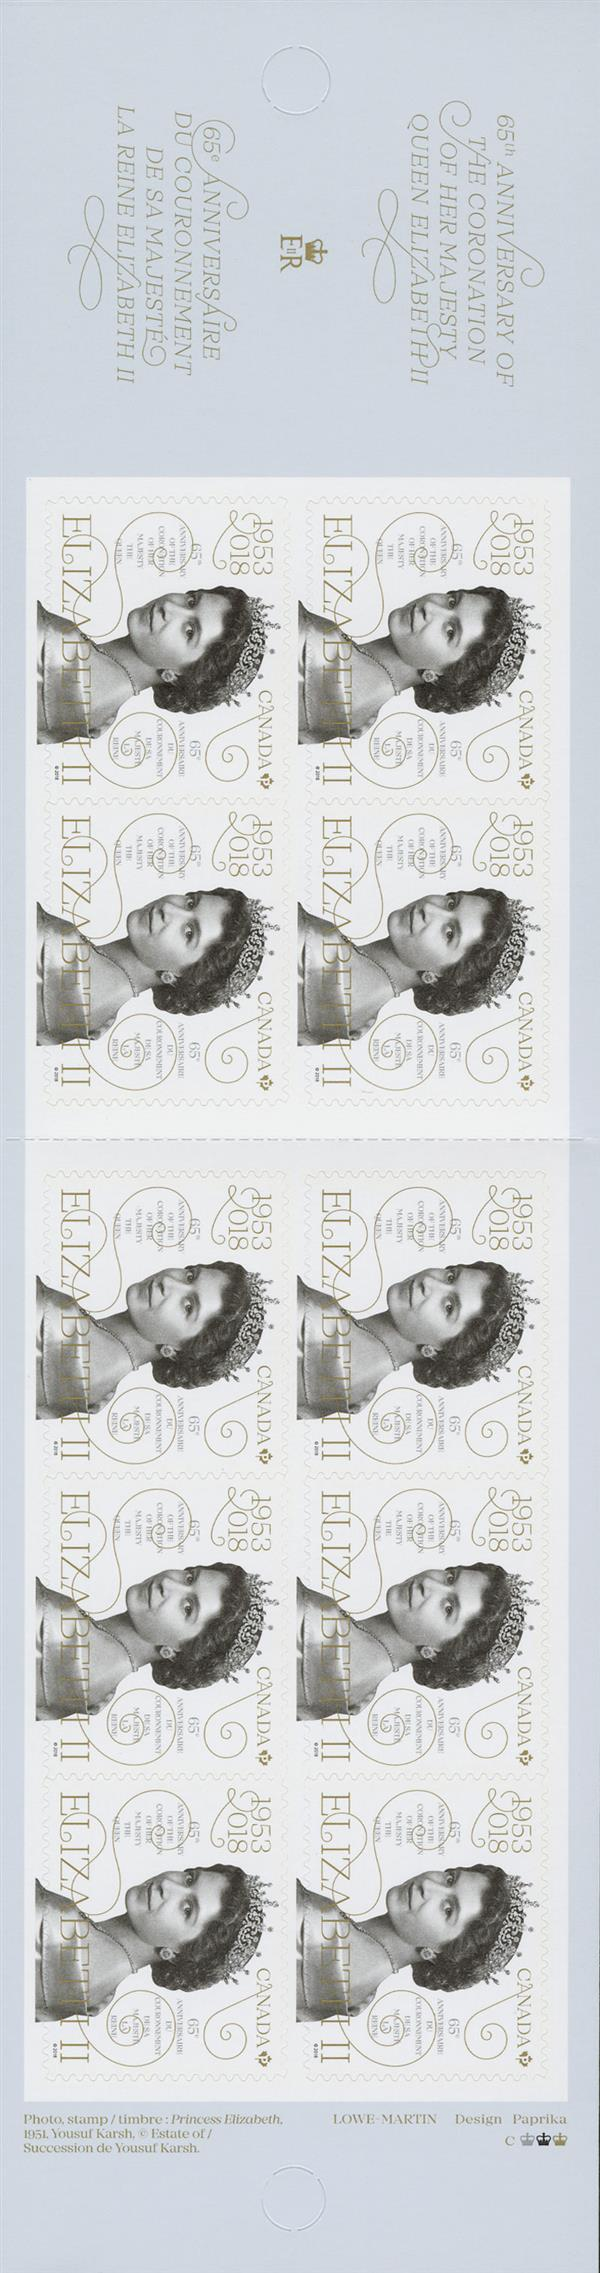 2018 Queen Elizabeth II 65th Anniversary of her Coronation booklet of 10 stamps